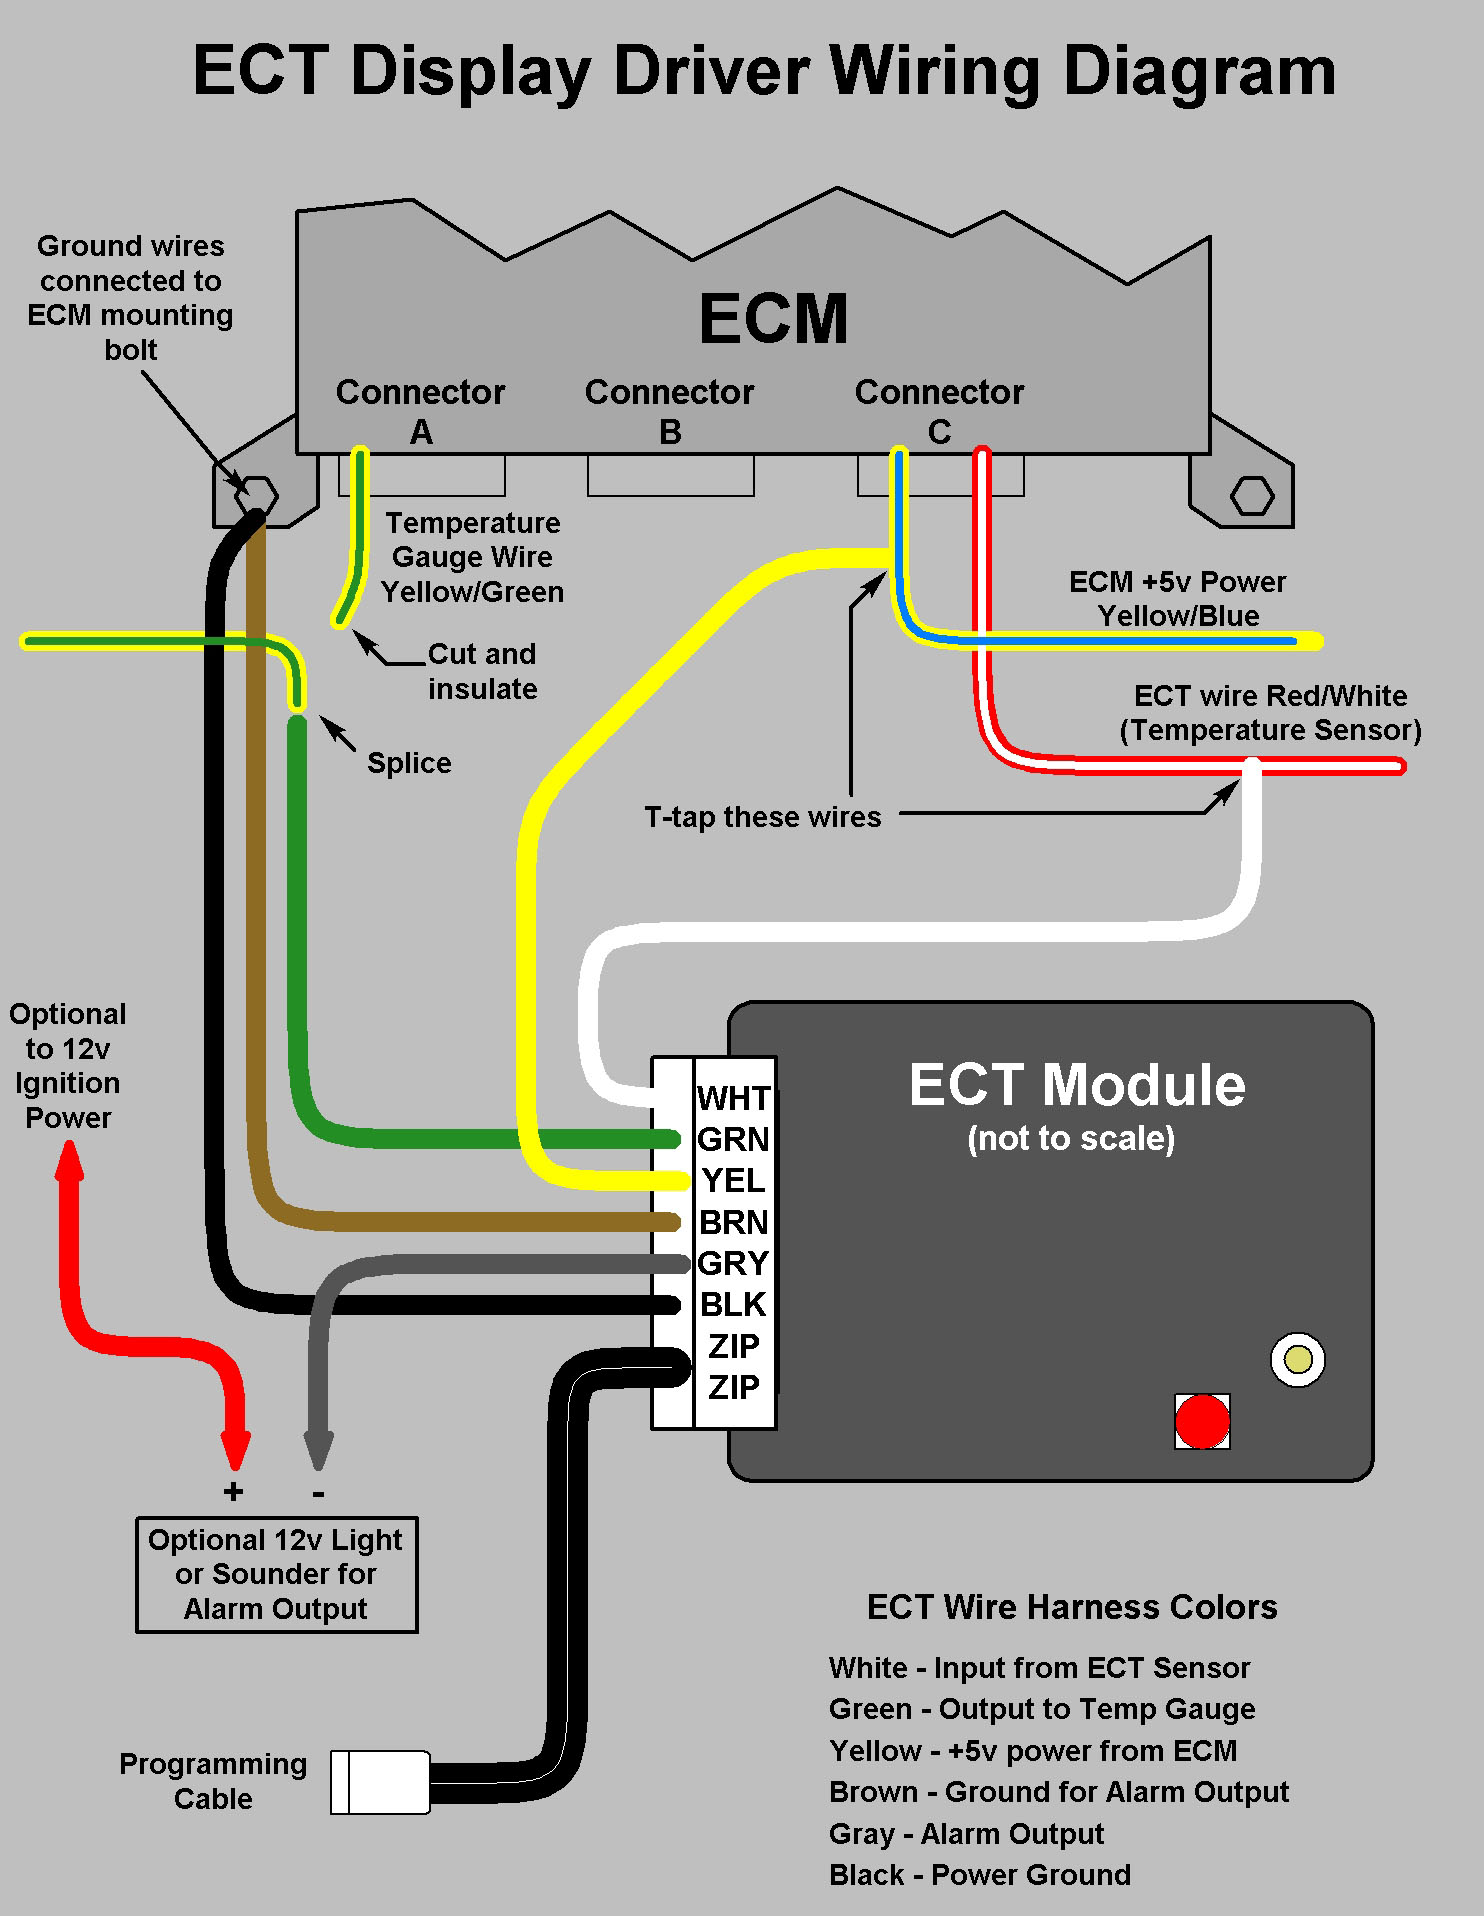 ECT wiring diagram modifry's s2000 ect installation ecm wiring diagram at eliteediting.co